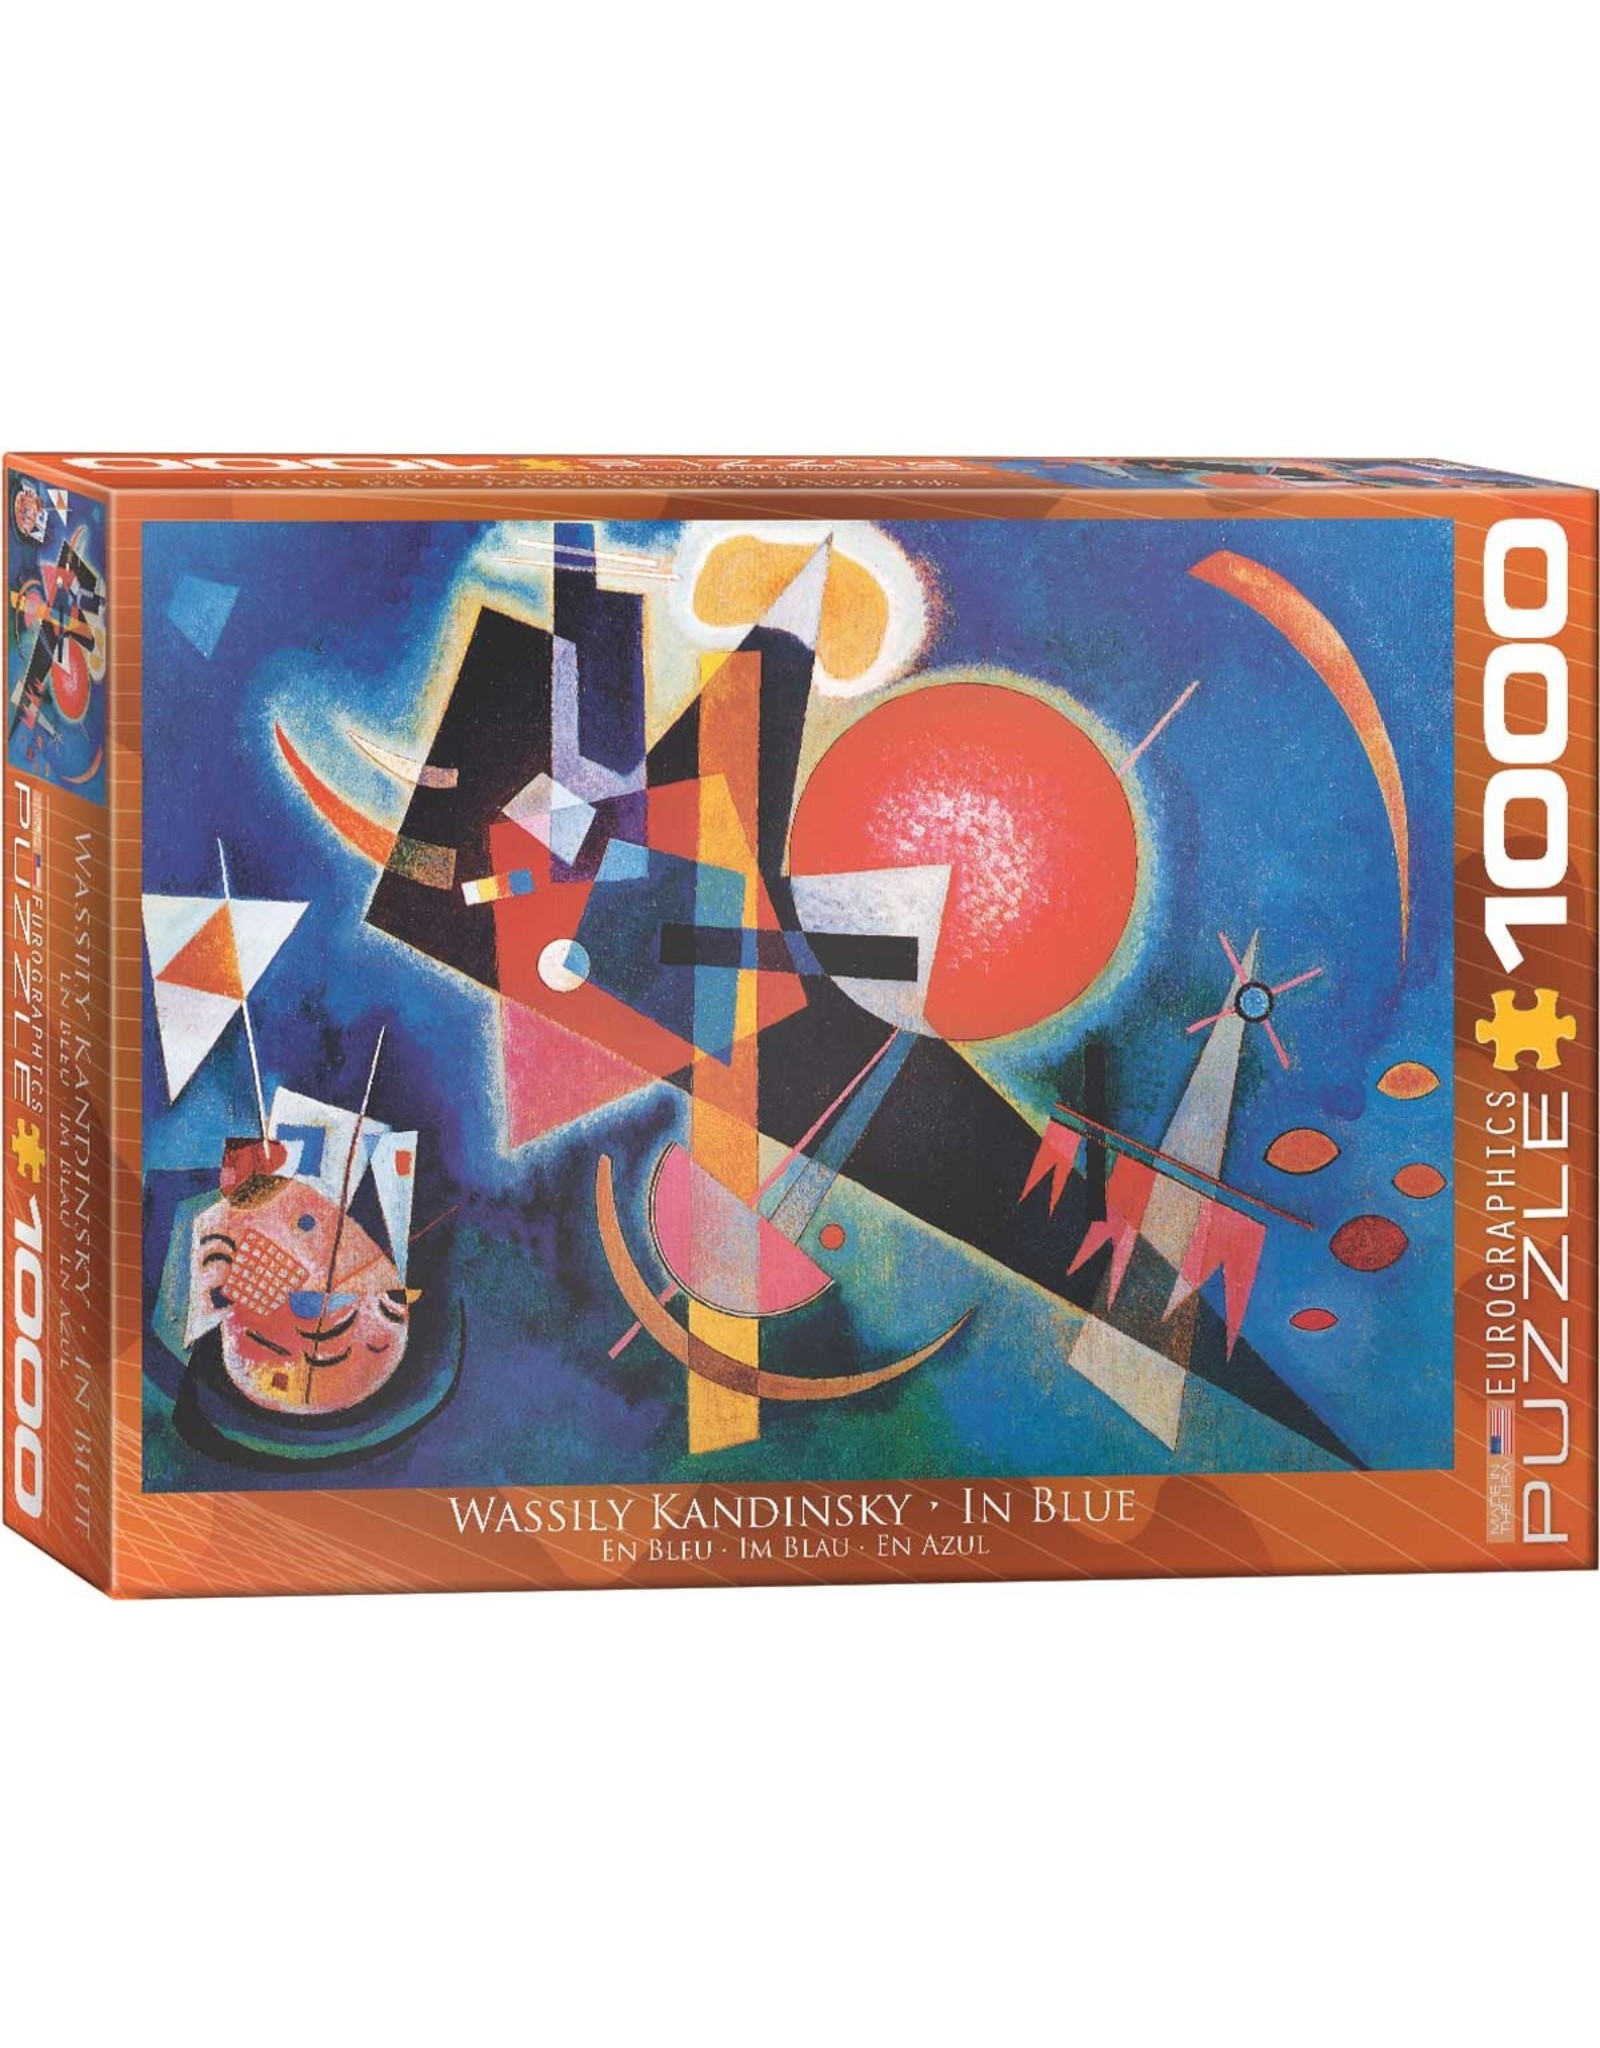 WASSILY KANDINSKY IN BLUE 1000 PIECE PUZZLE